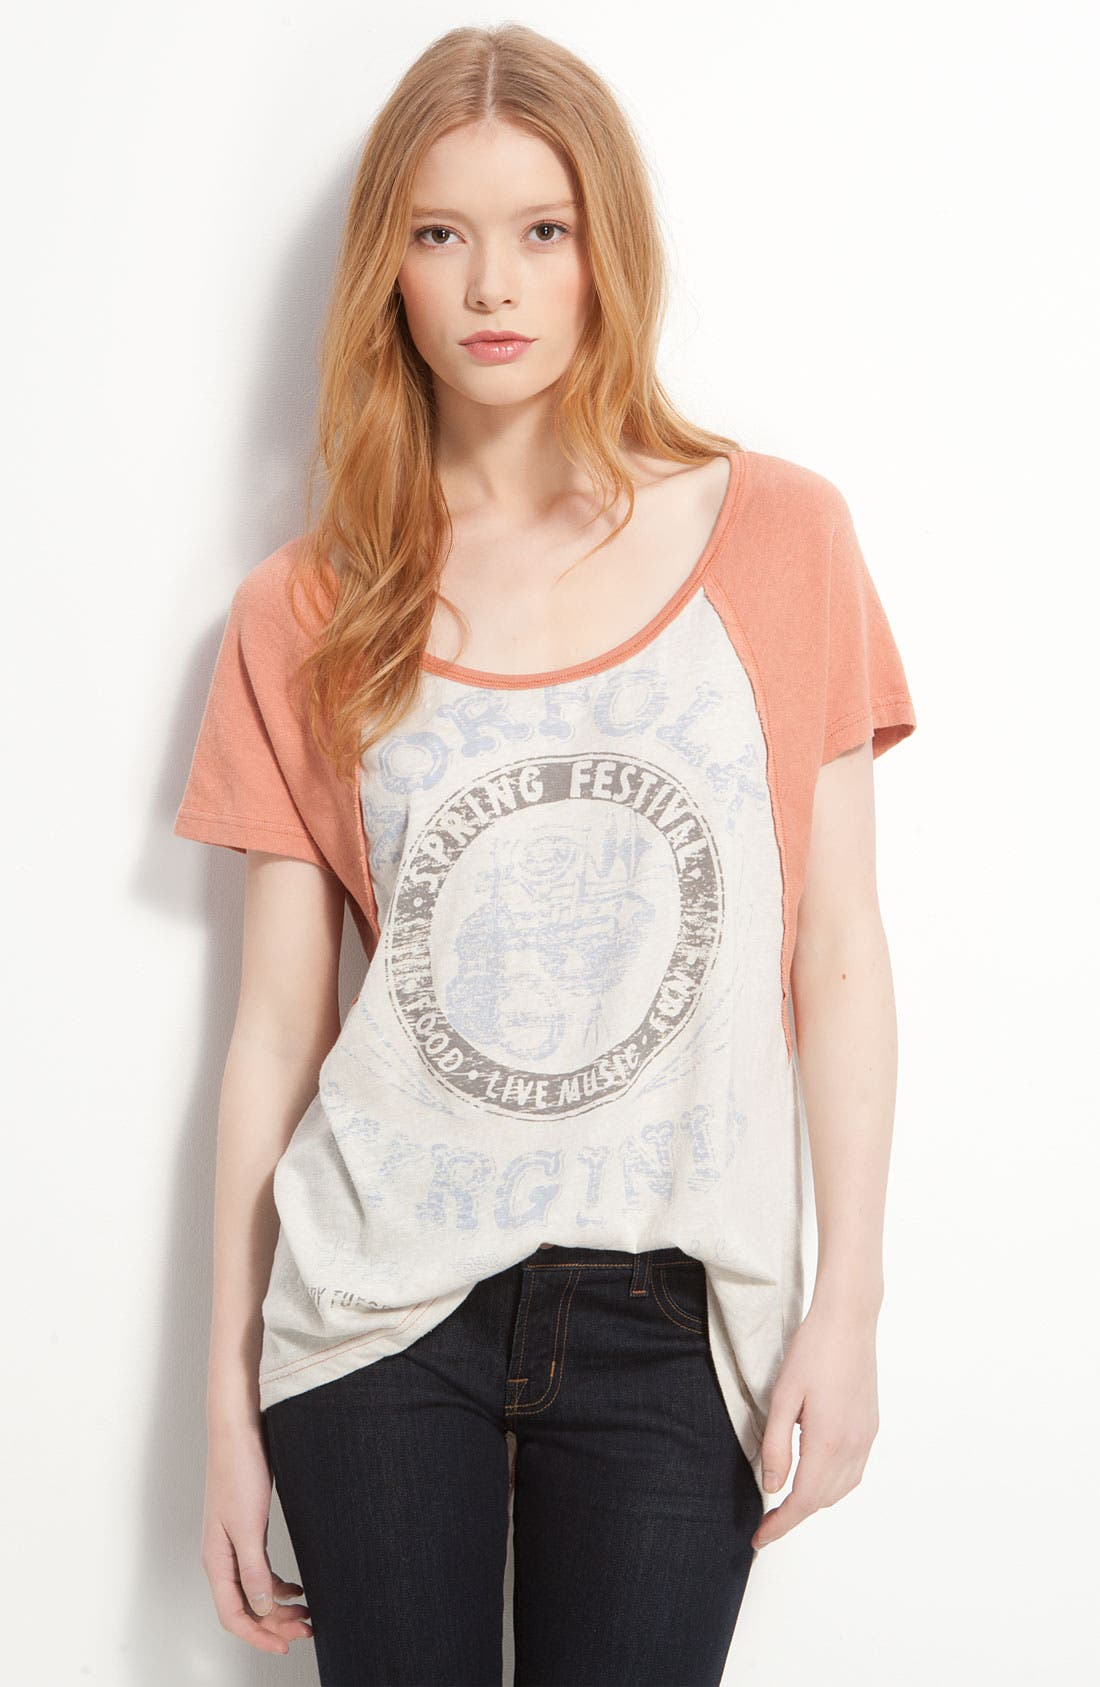 Main Image - Free People Vintage Festival Graphic Baseball Tee